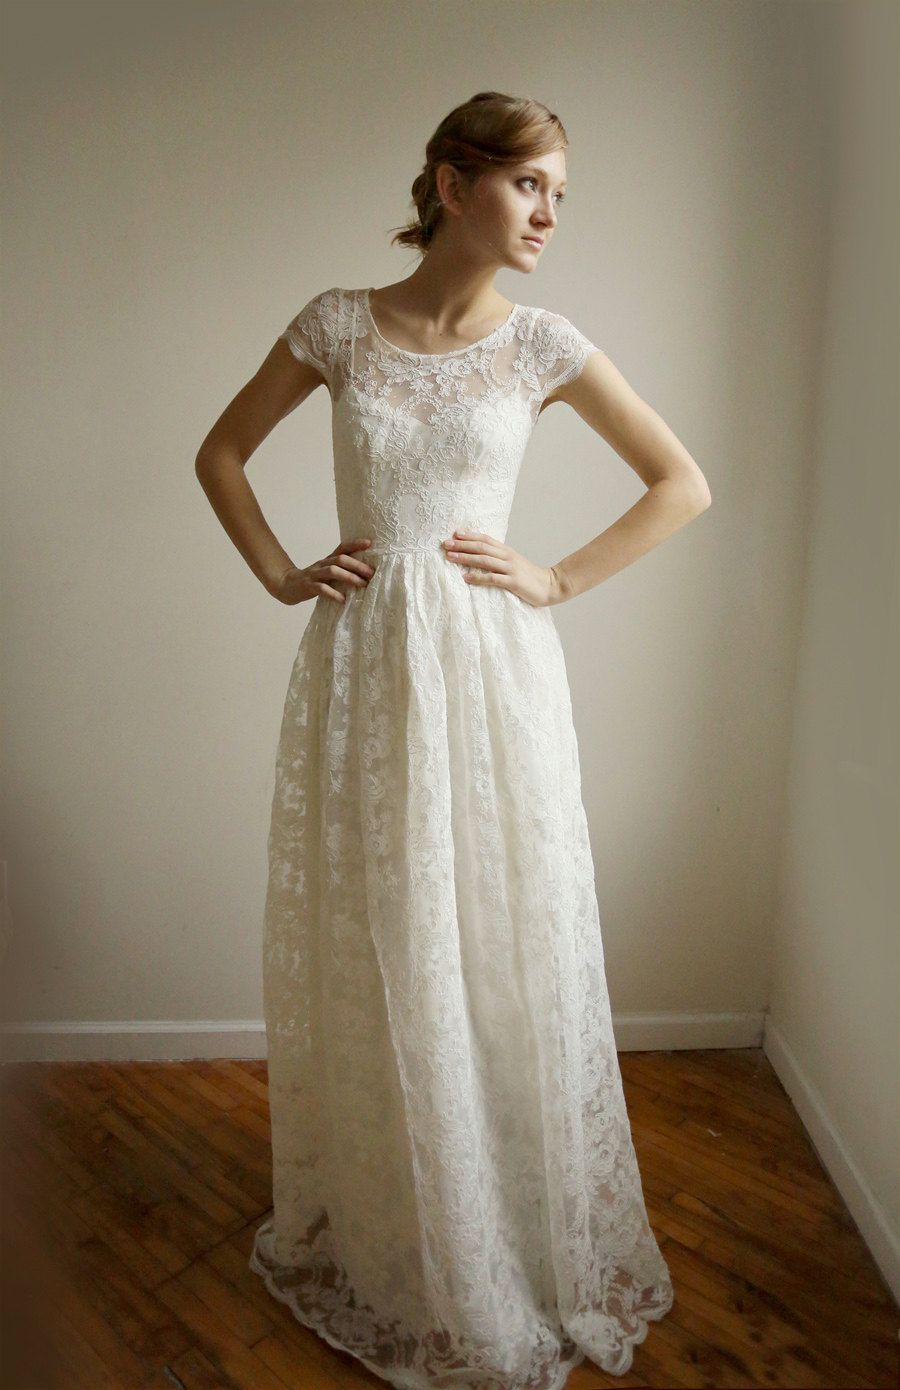 Simple Lace Wedding Dress: Simple Cotton Lace Wedding Dress At Reisefeber.org